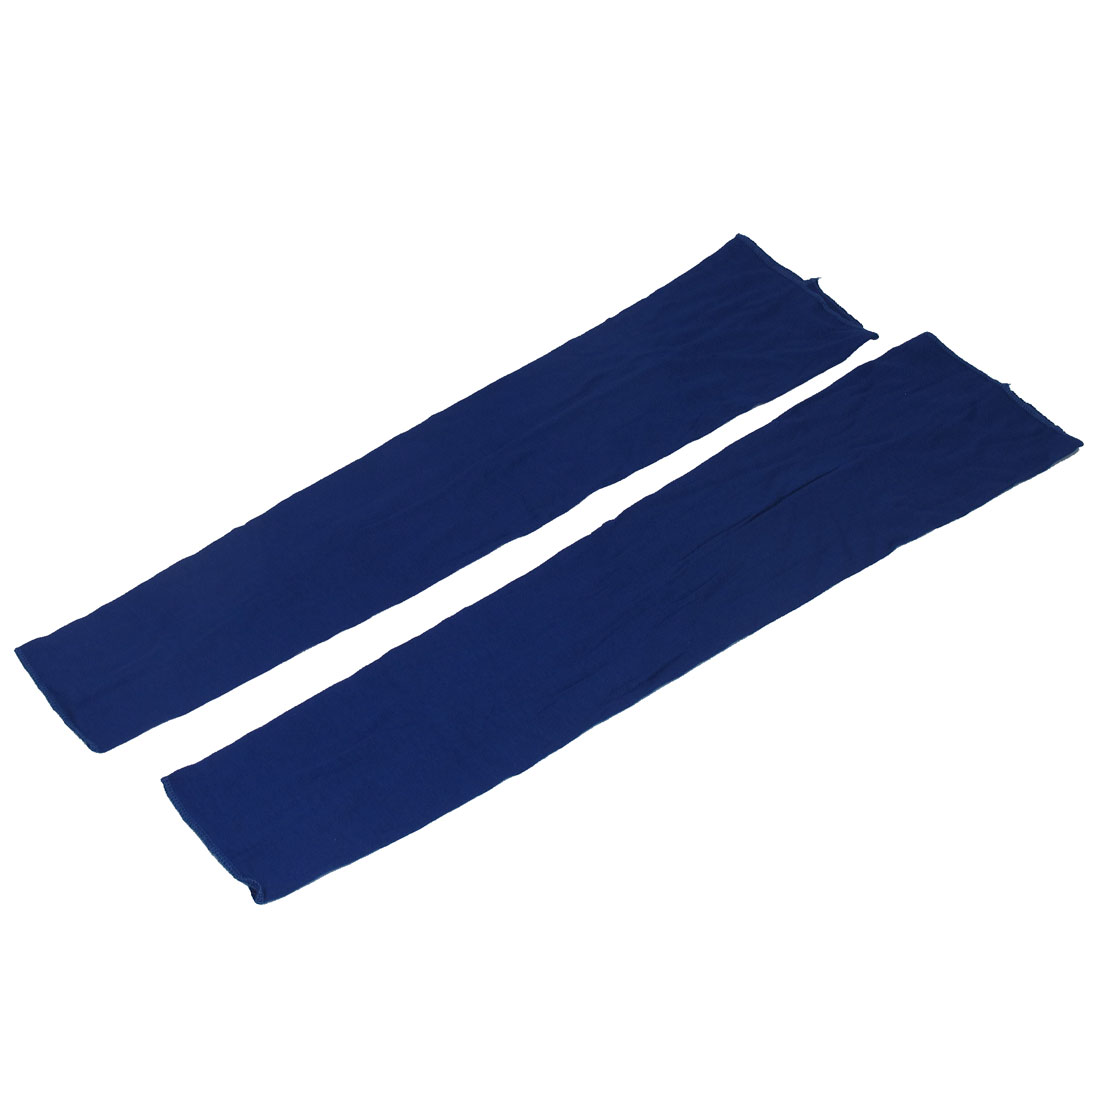 Unisex Stretchy Outdoor Activity UV Skin Cover Sun Protection Arm Sleeves Royal Blue